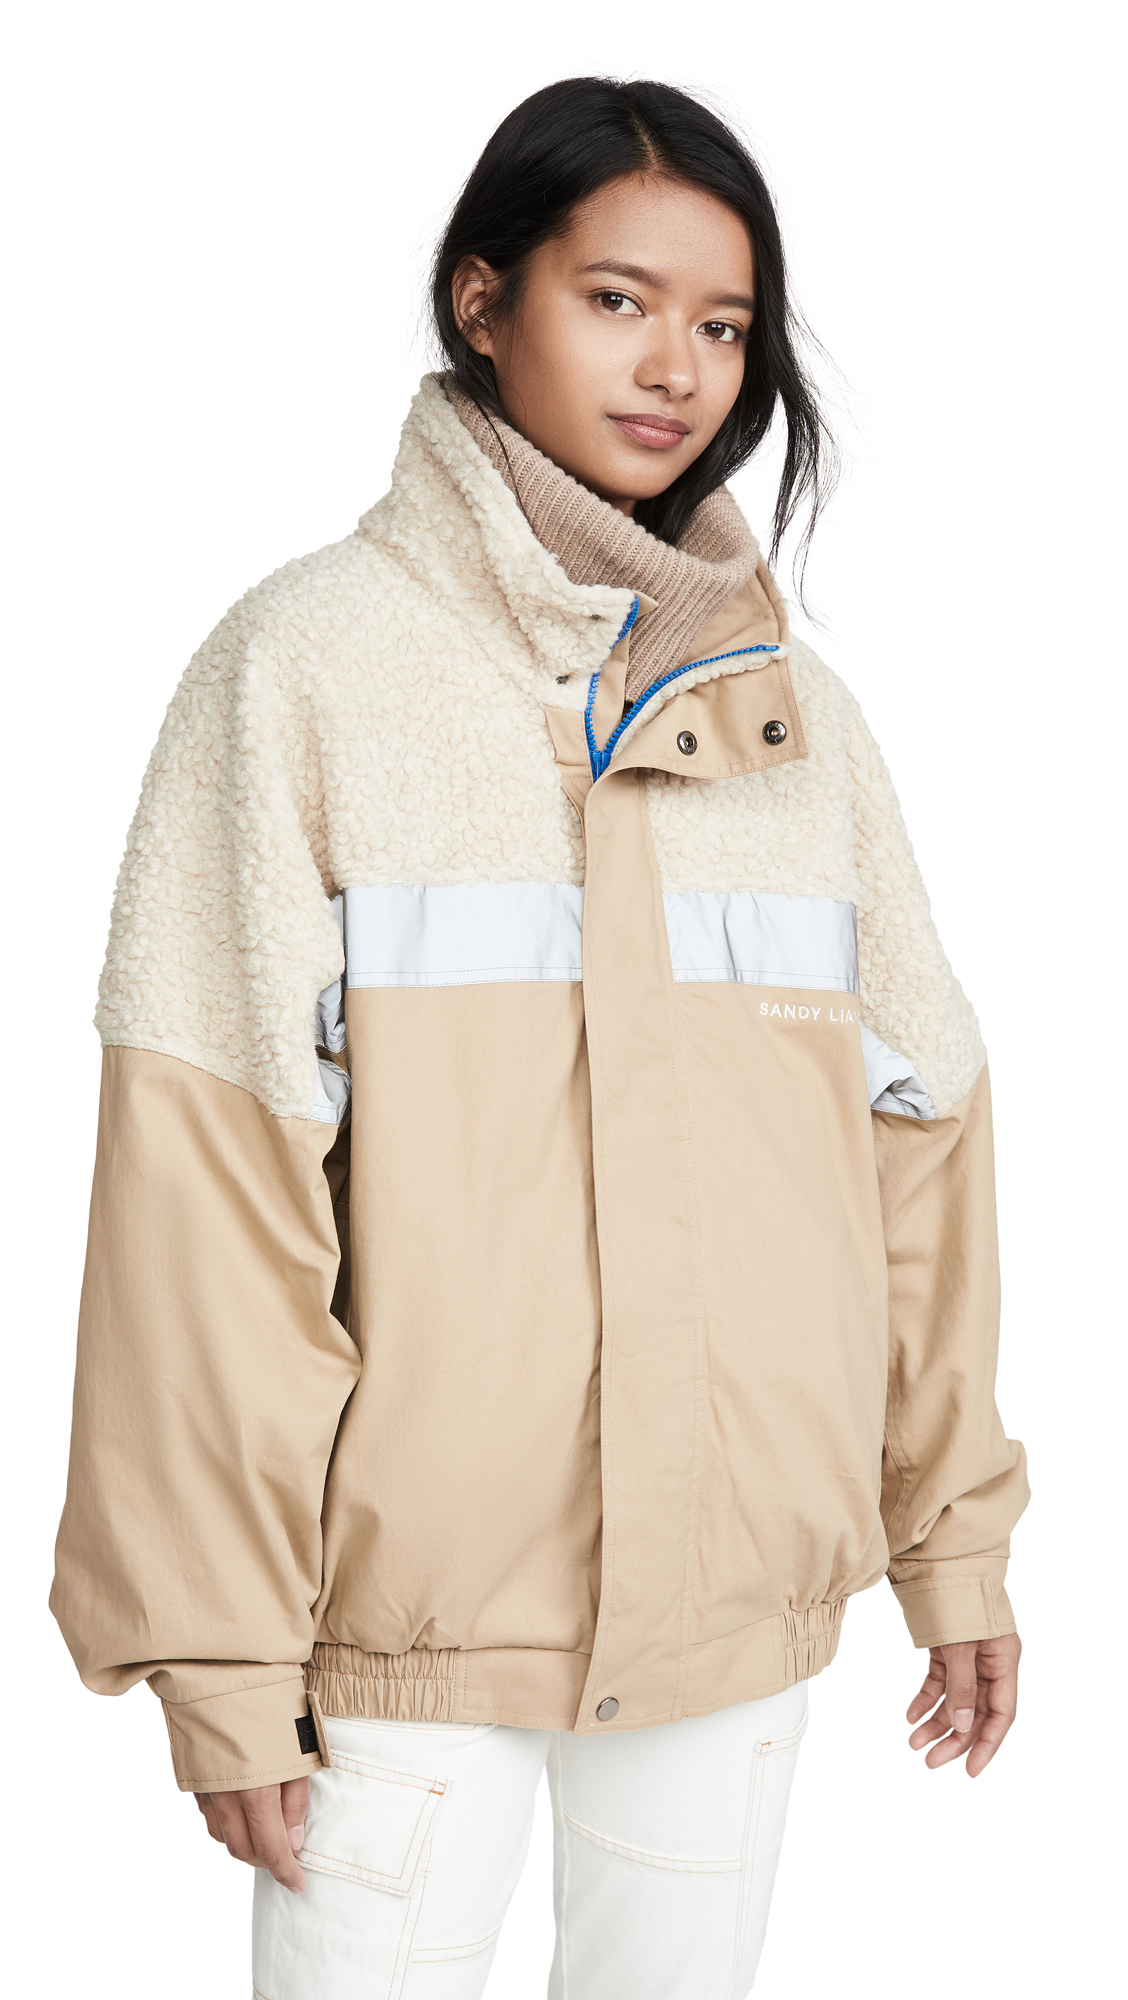 Buy Sandy Liang Essos Jacket online beautiful Sandy Liang Jackets, Coats, Coats